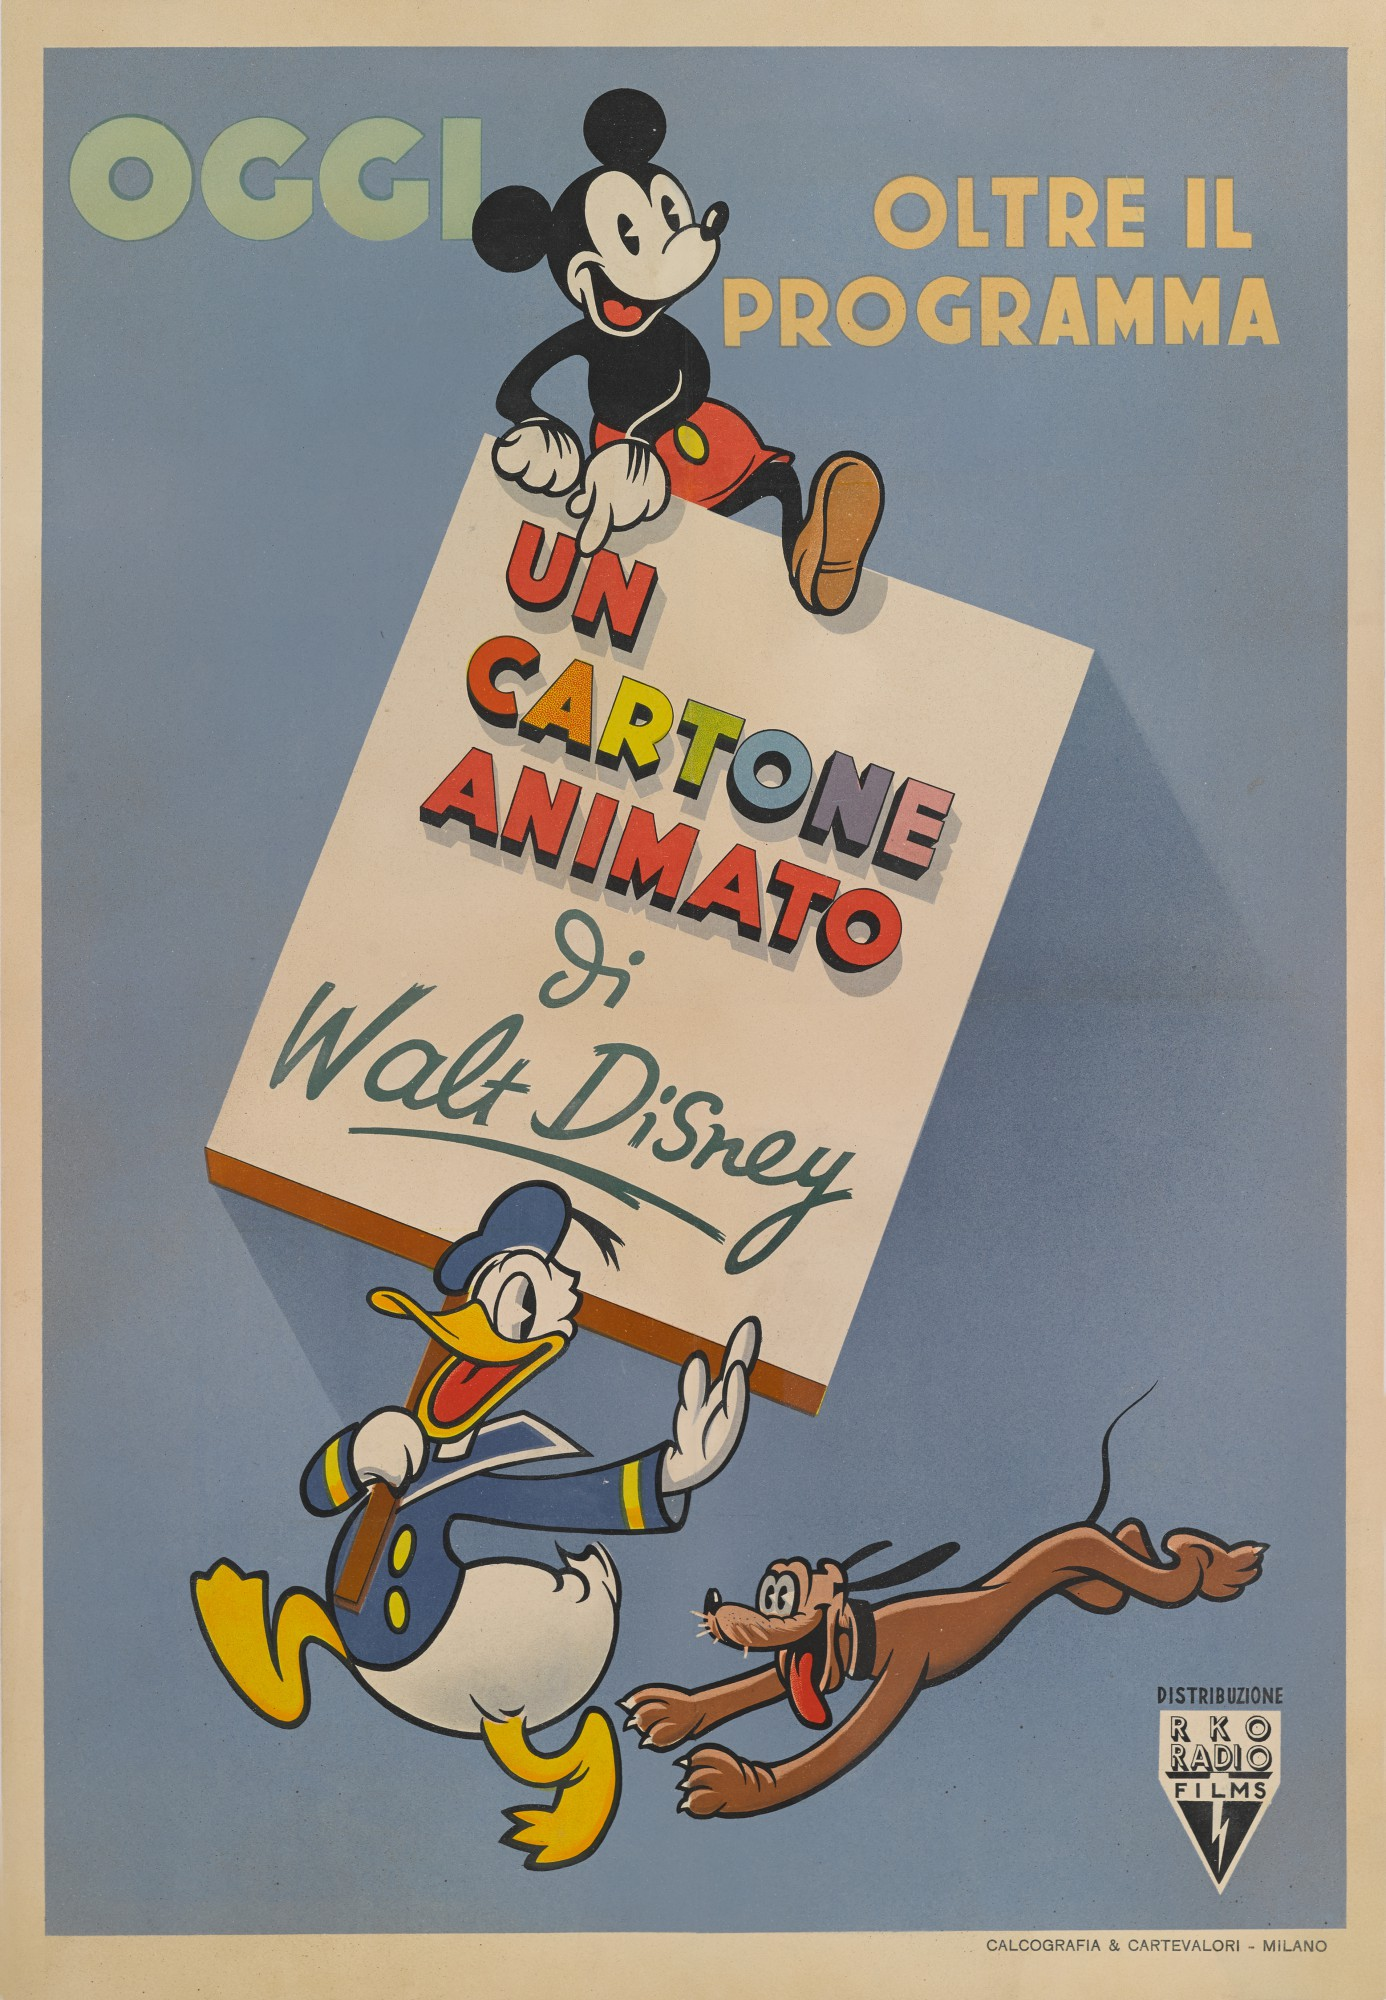 WALT DISNEY ANIMATION / UN CARTONE ANIMATO (1940'S) POSTER